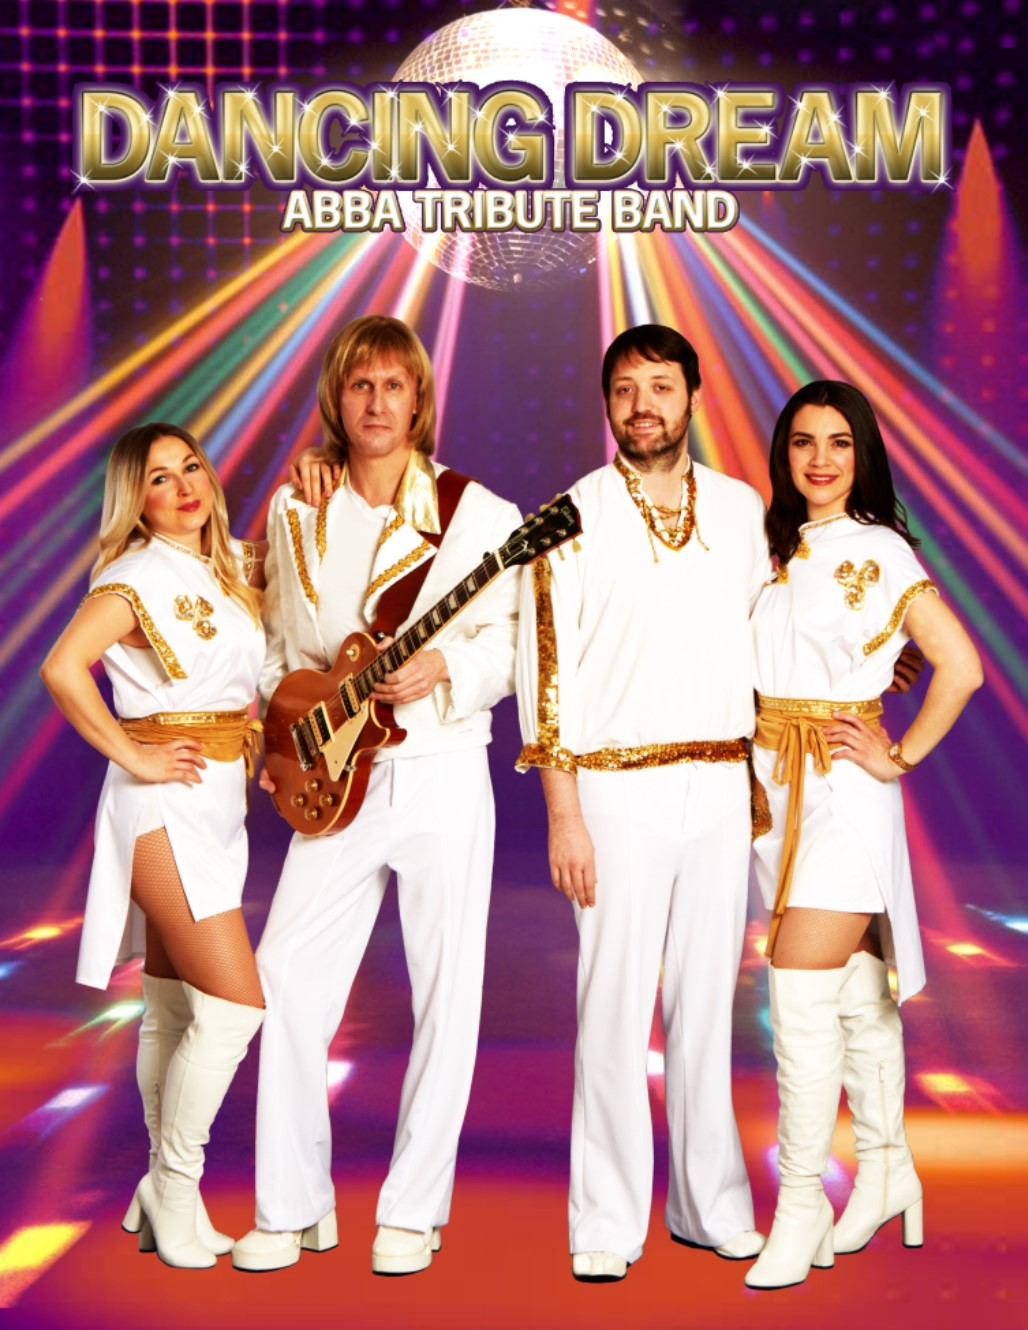 ABBA Tribute Band @ Our Lady of Lourdes Parish